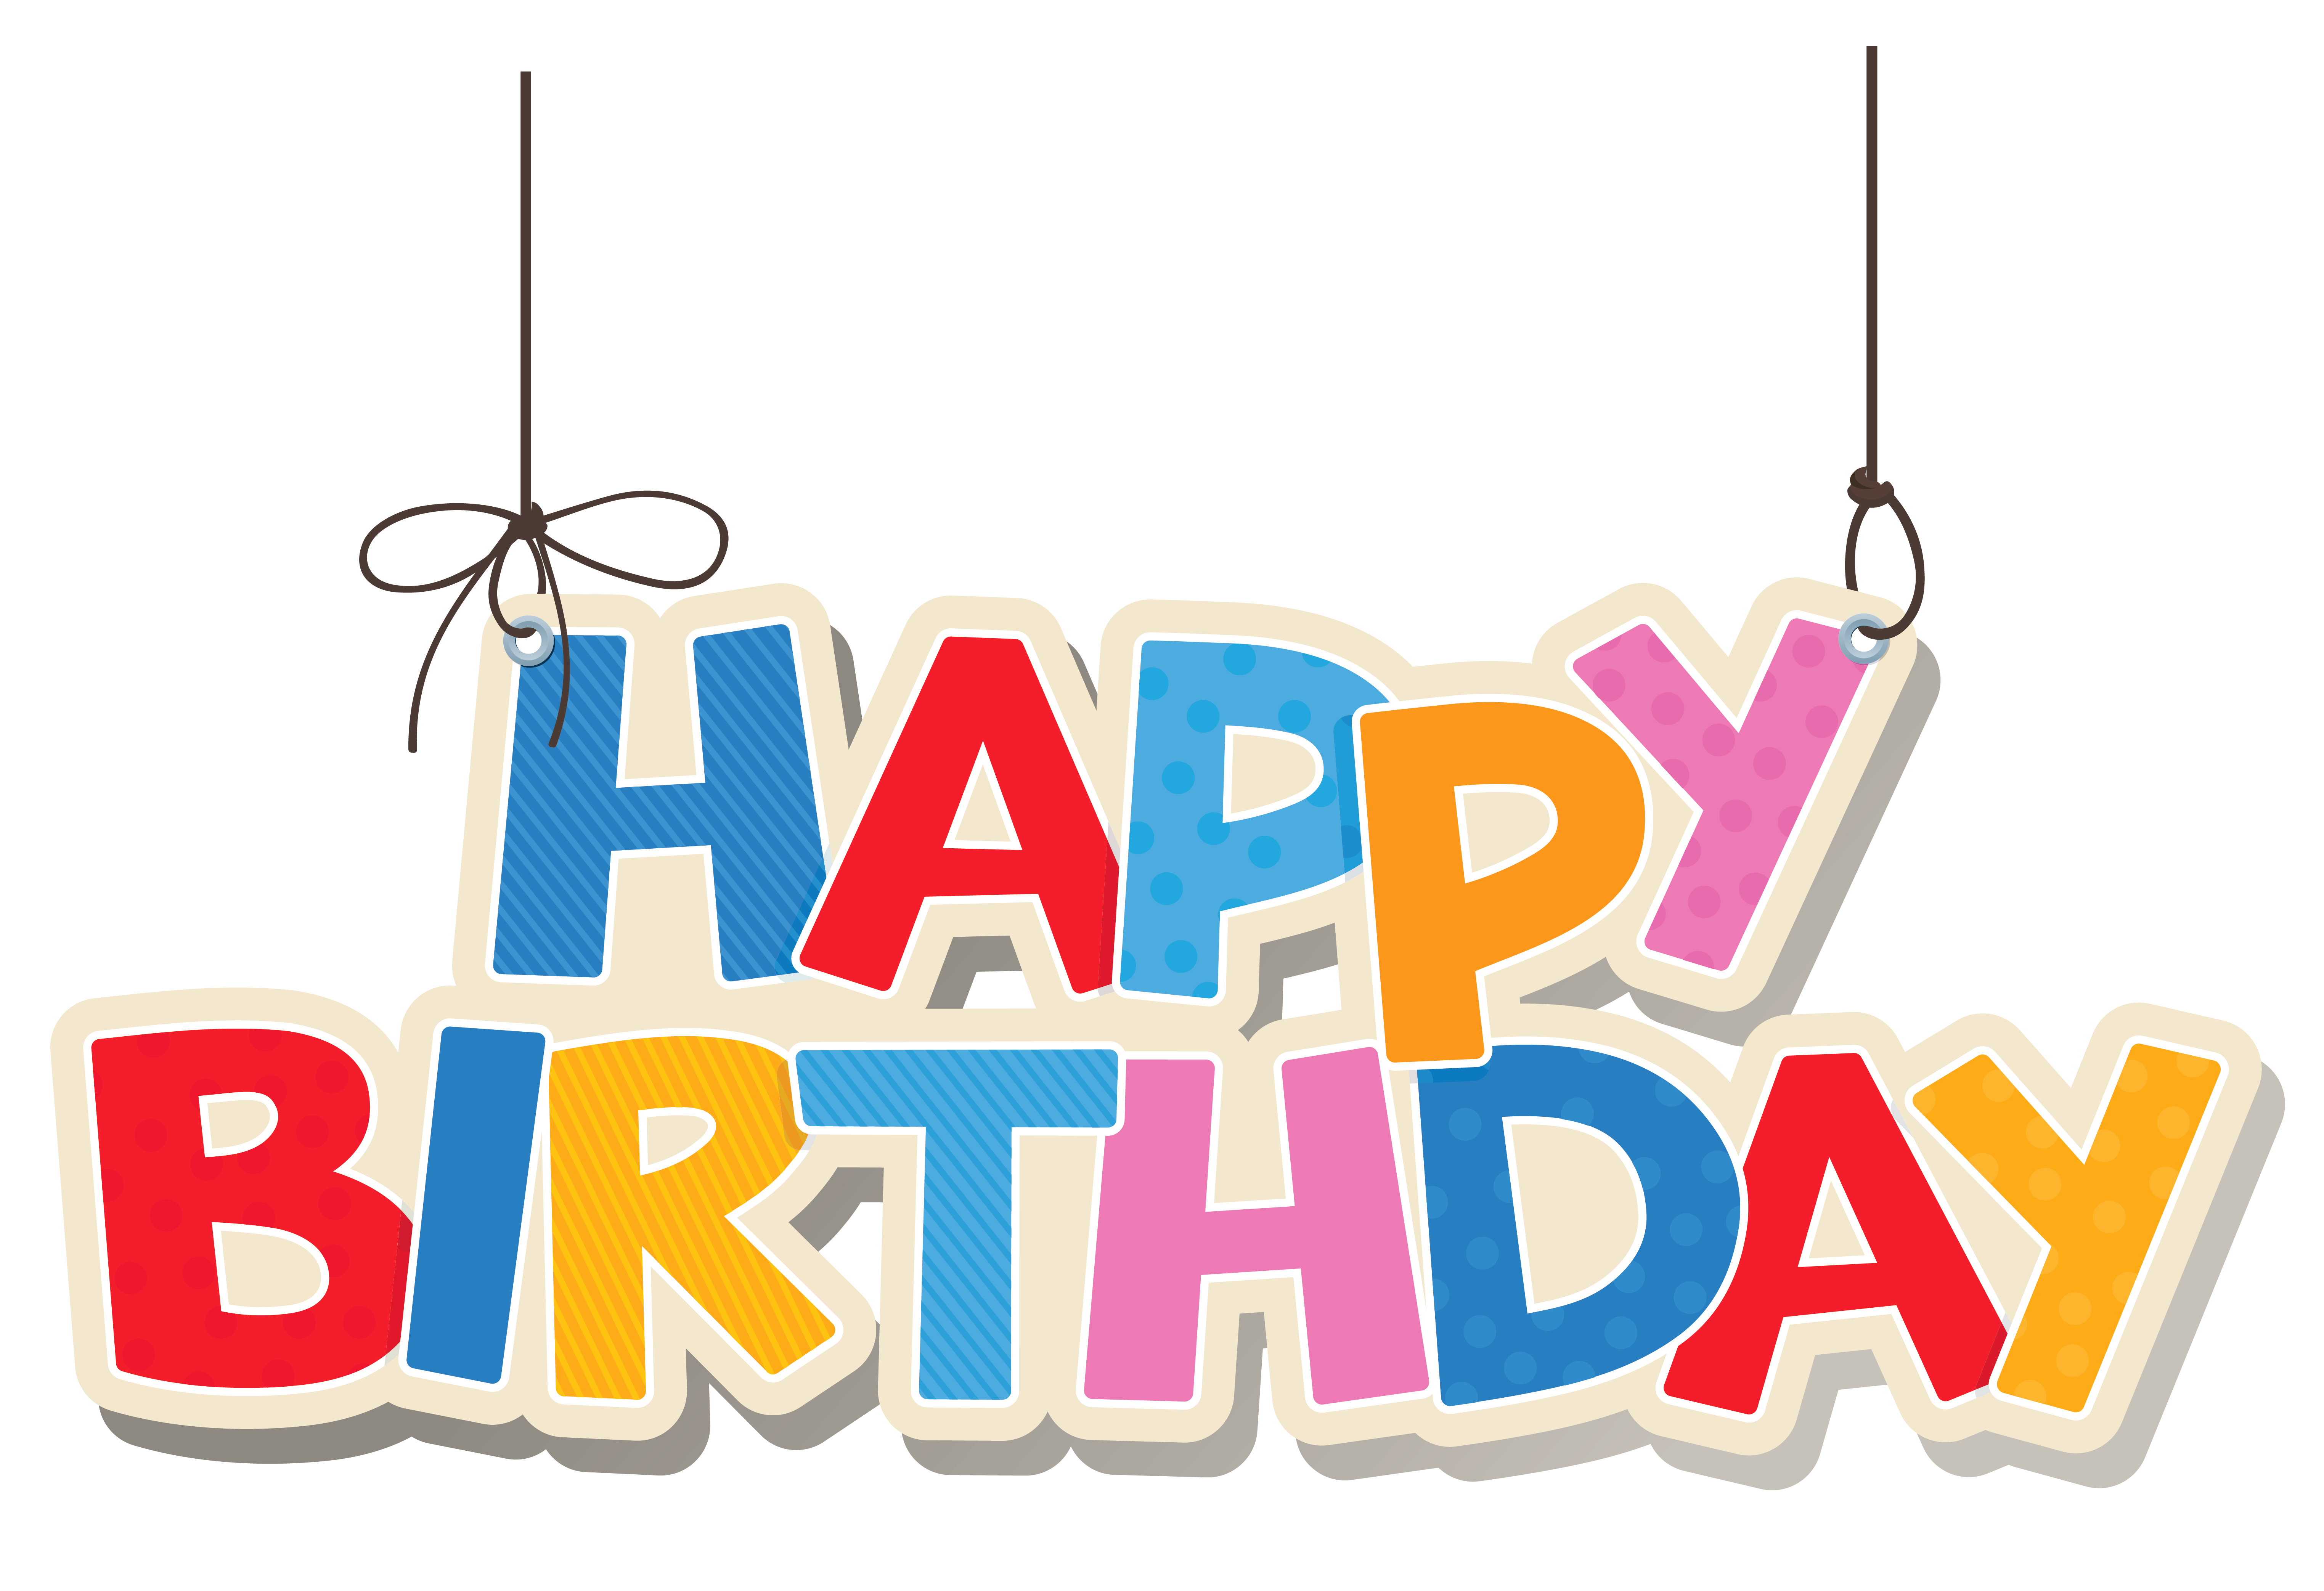 Birthday Celebration Clipart PNG 13232